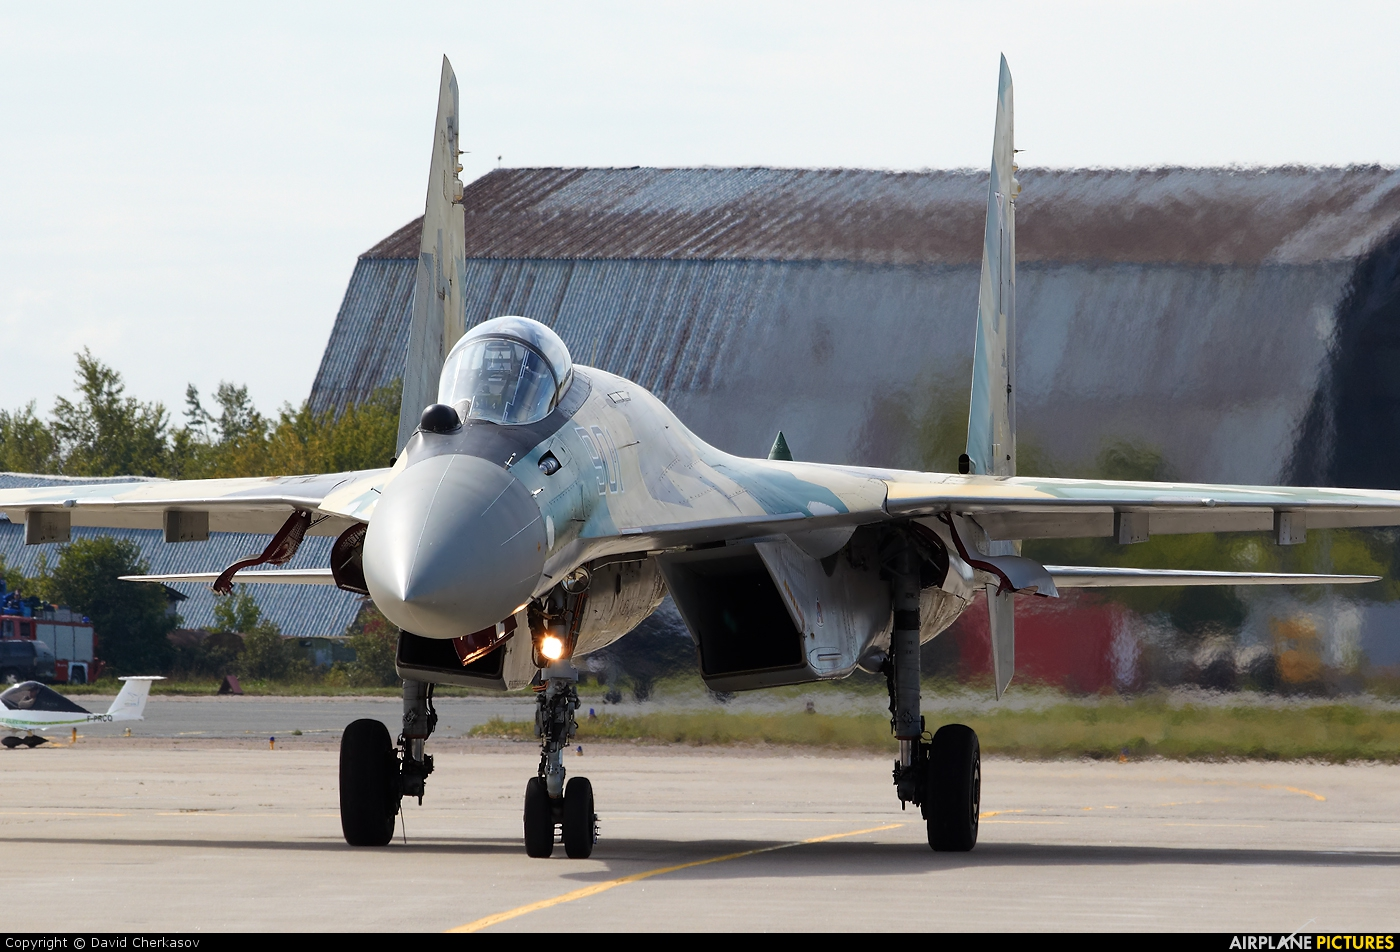 Russia - Air Force 901 aircraft at Ramenskoye - Zhukovsky